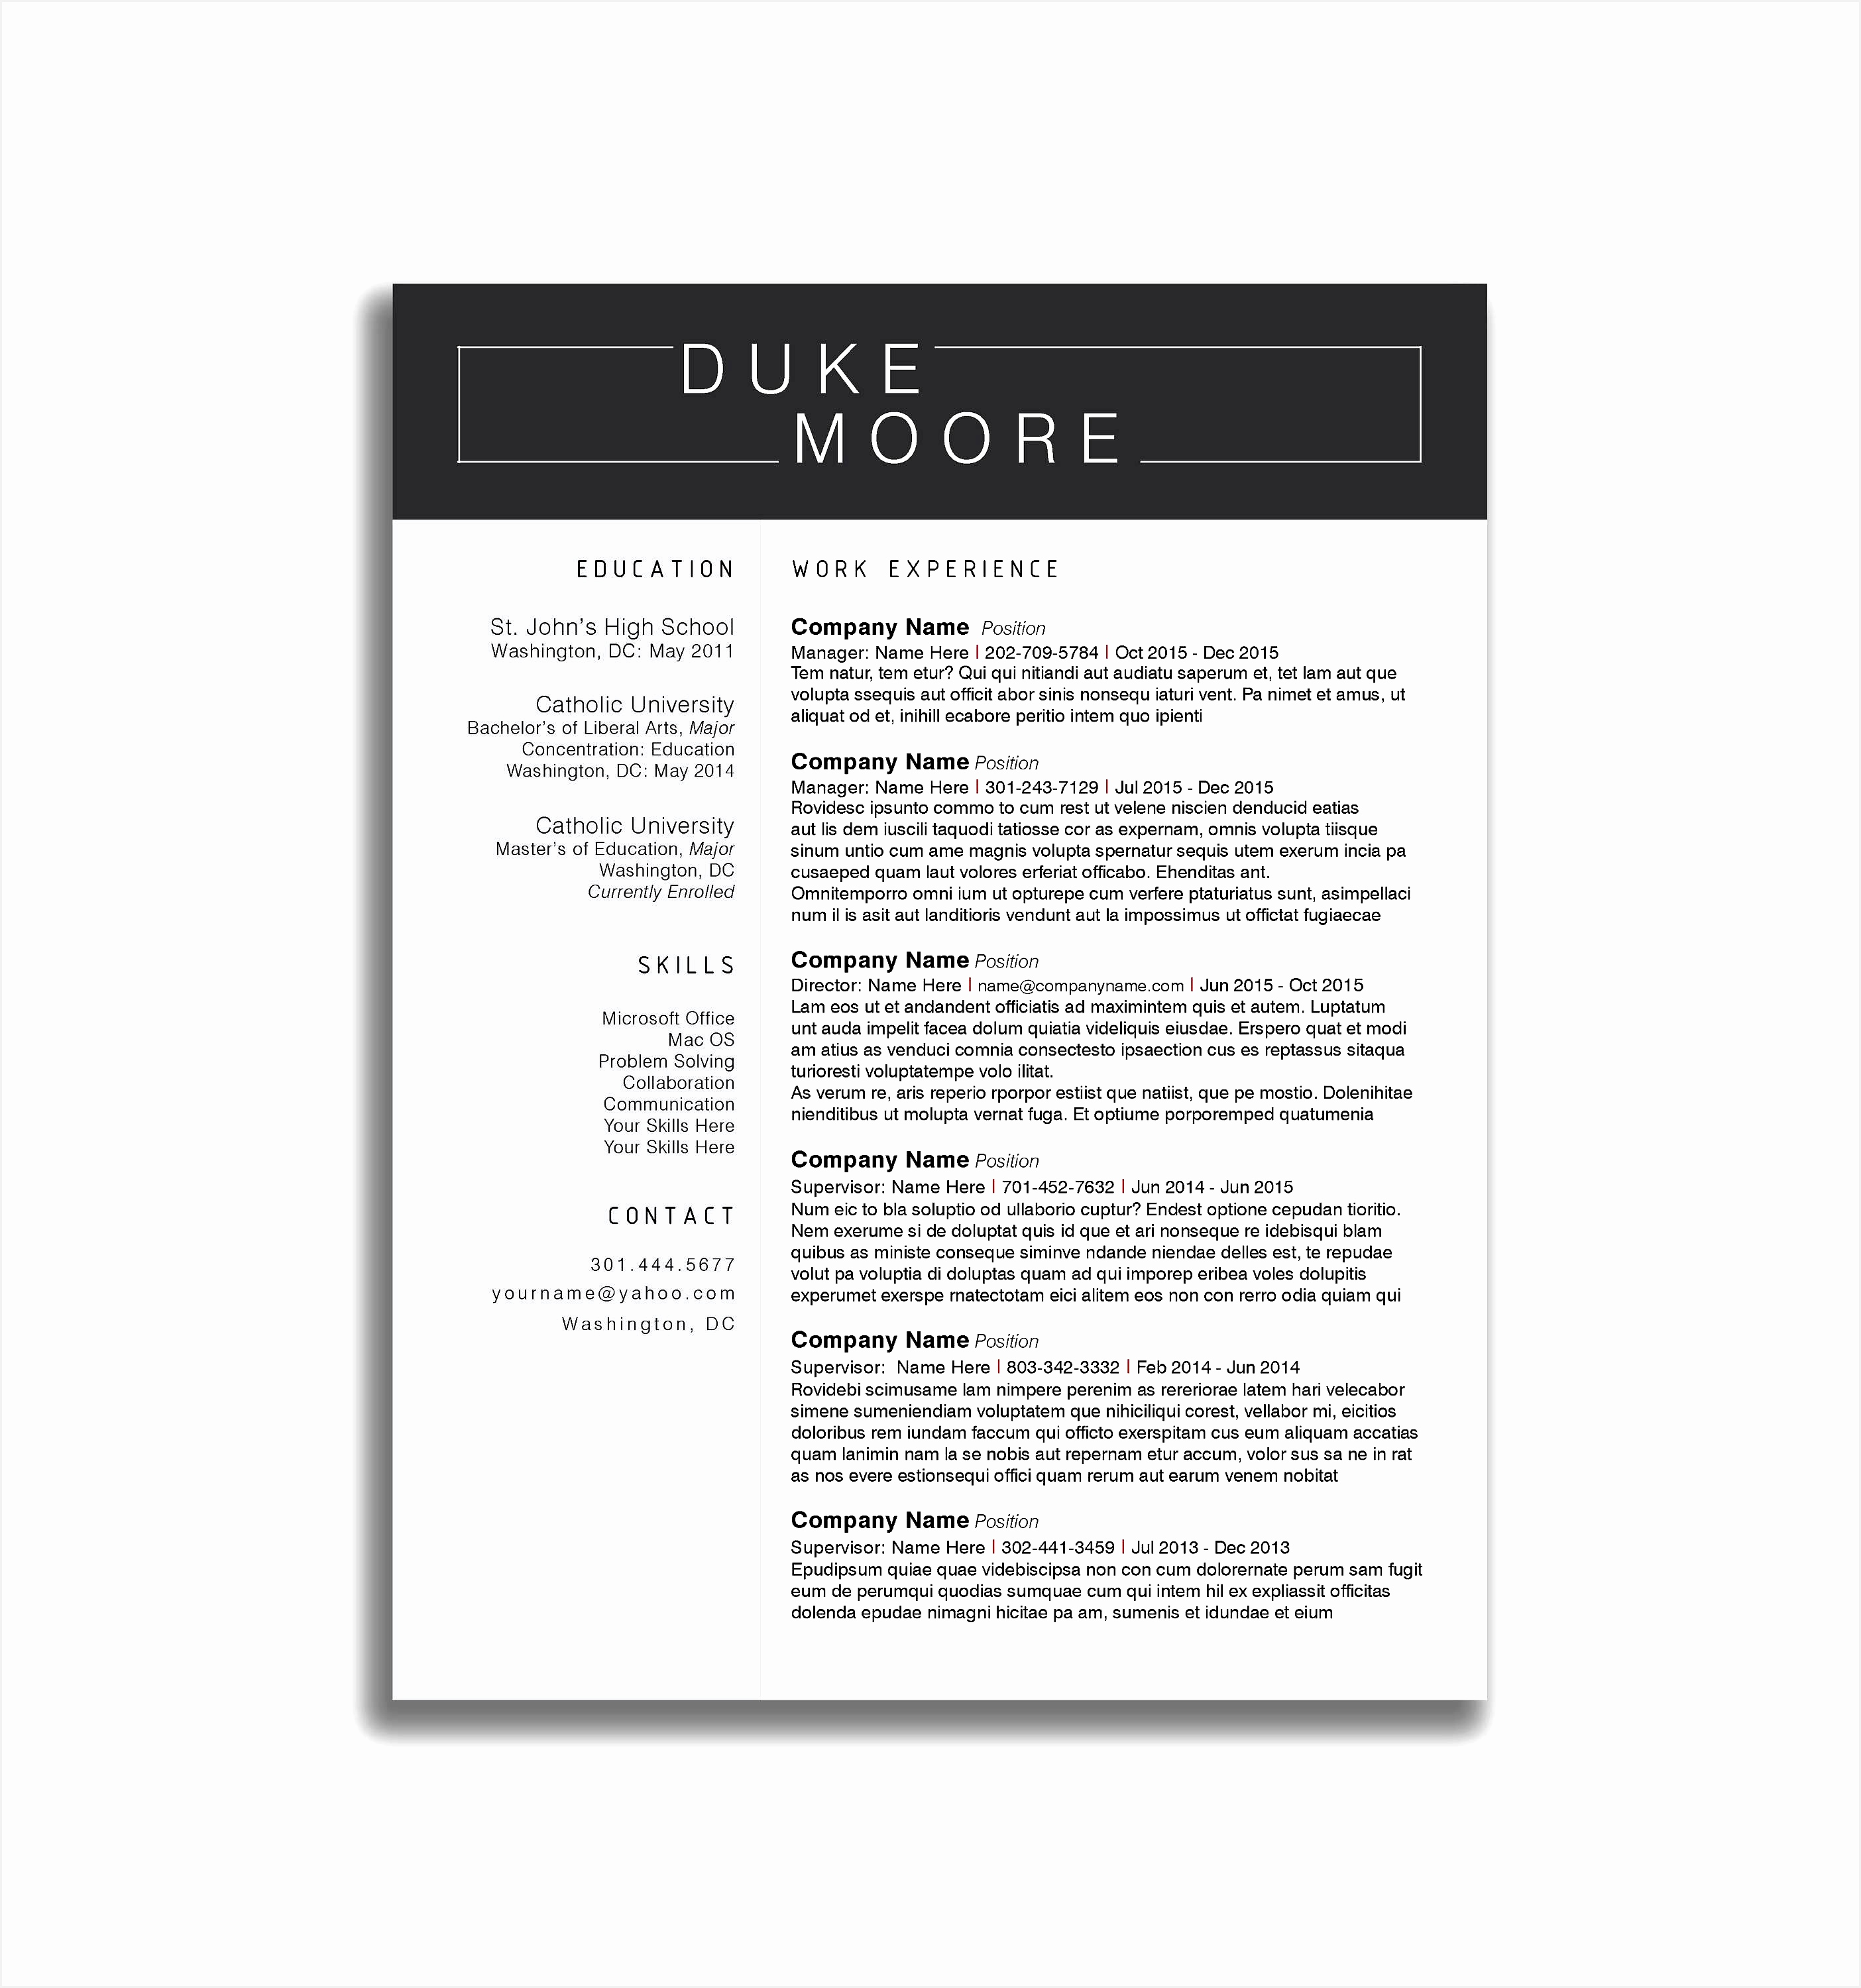 free creative resume templates microsoft word inspirational resume30002808